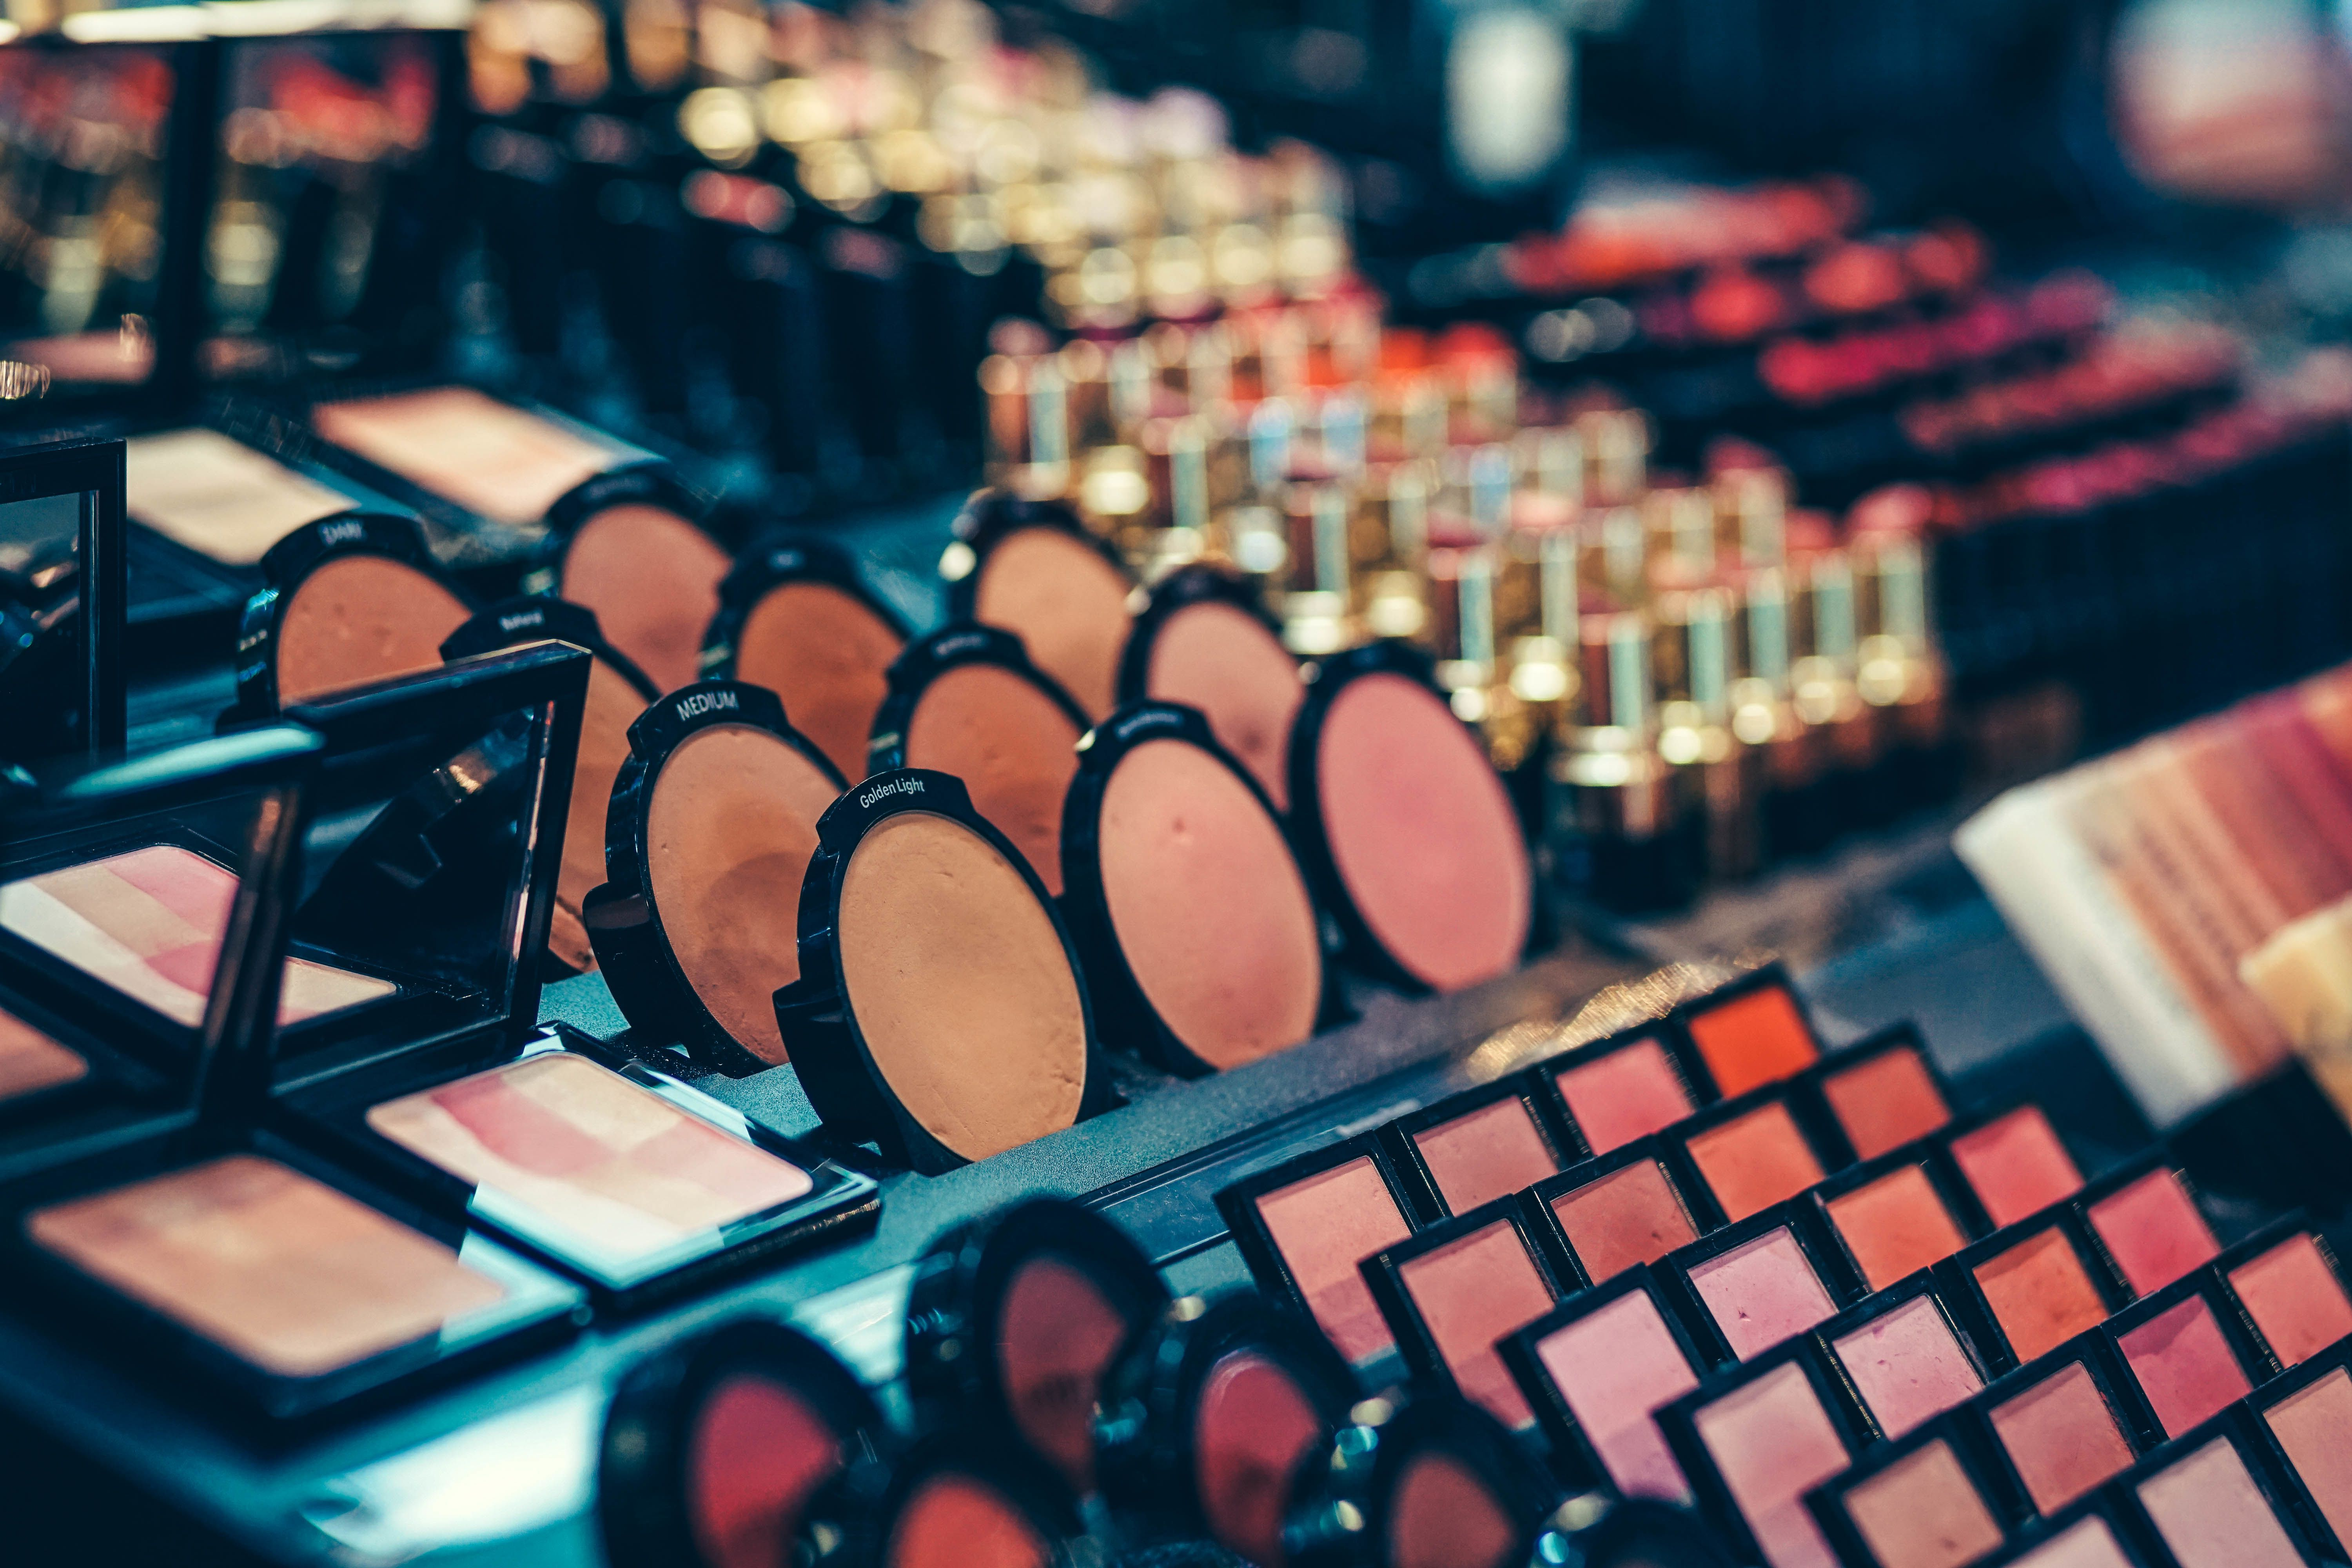 beauty products for sale at market 5b c9e77c004f9455d3